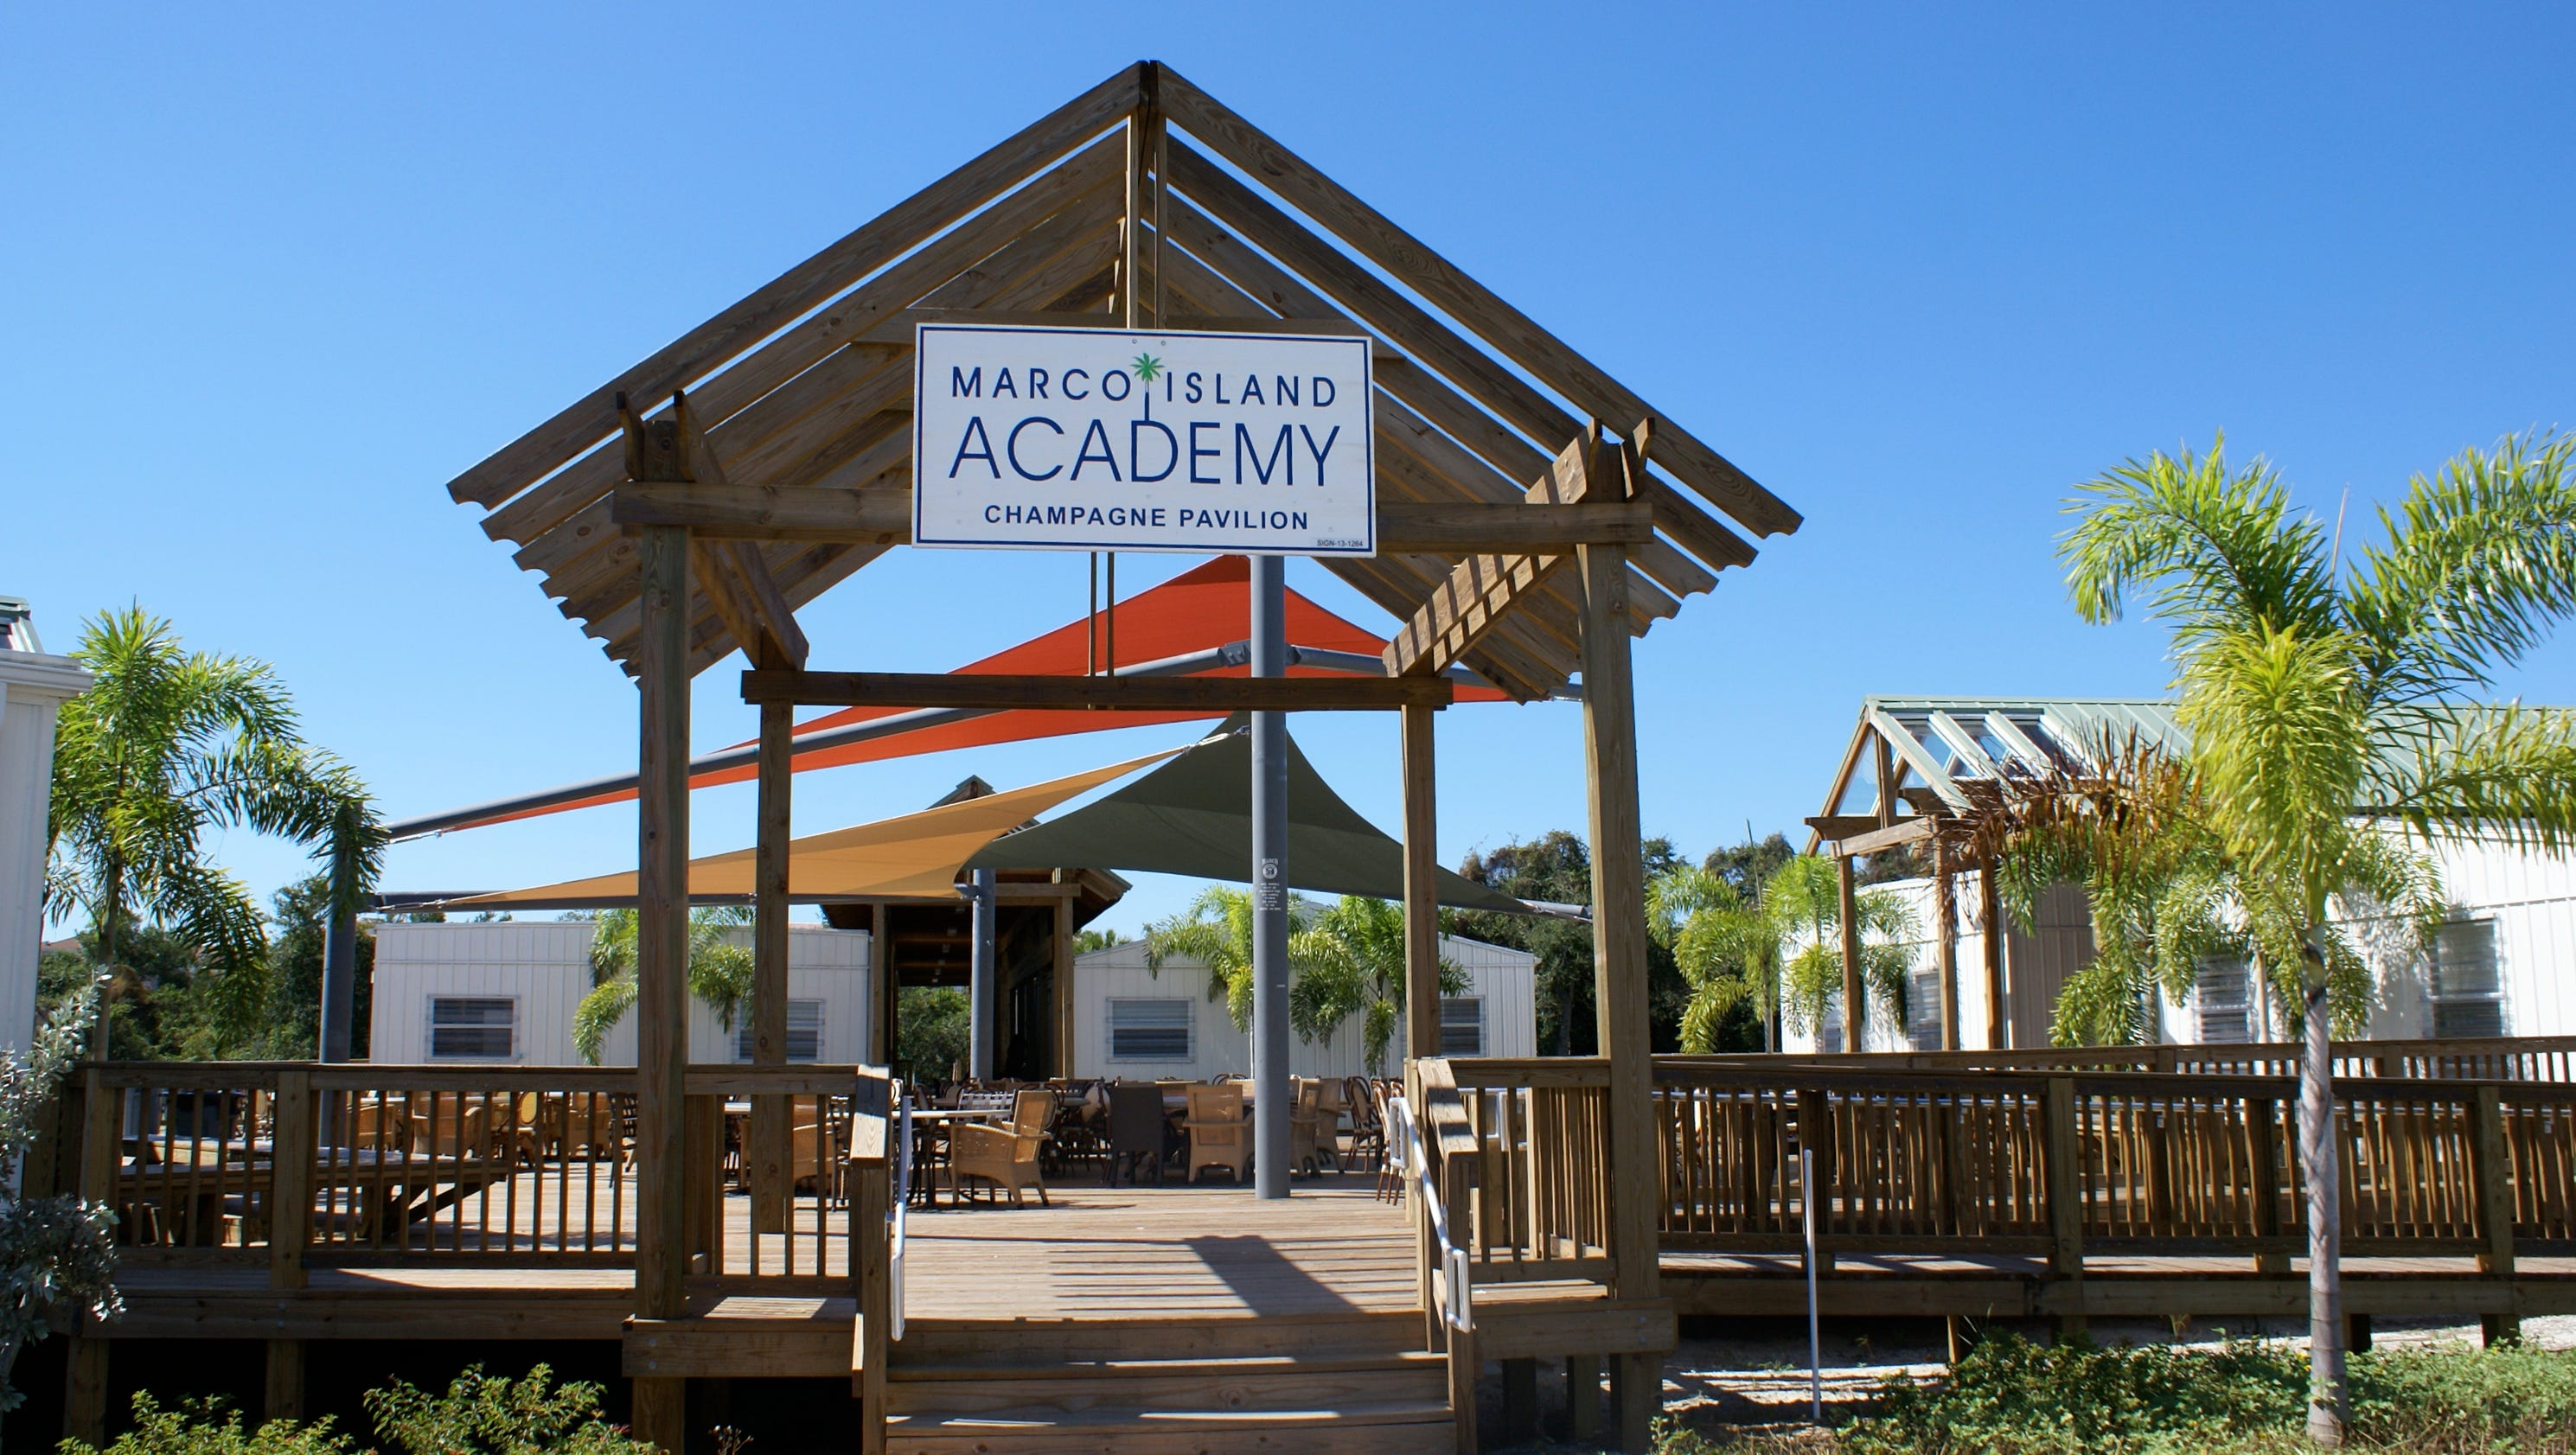 City Of Marco Island Parks And Recreation